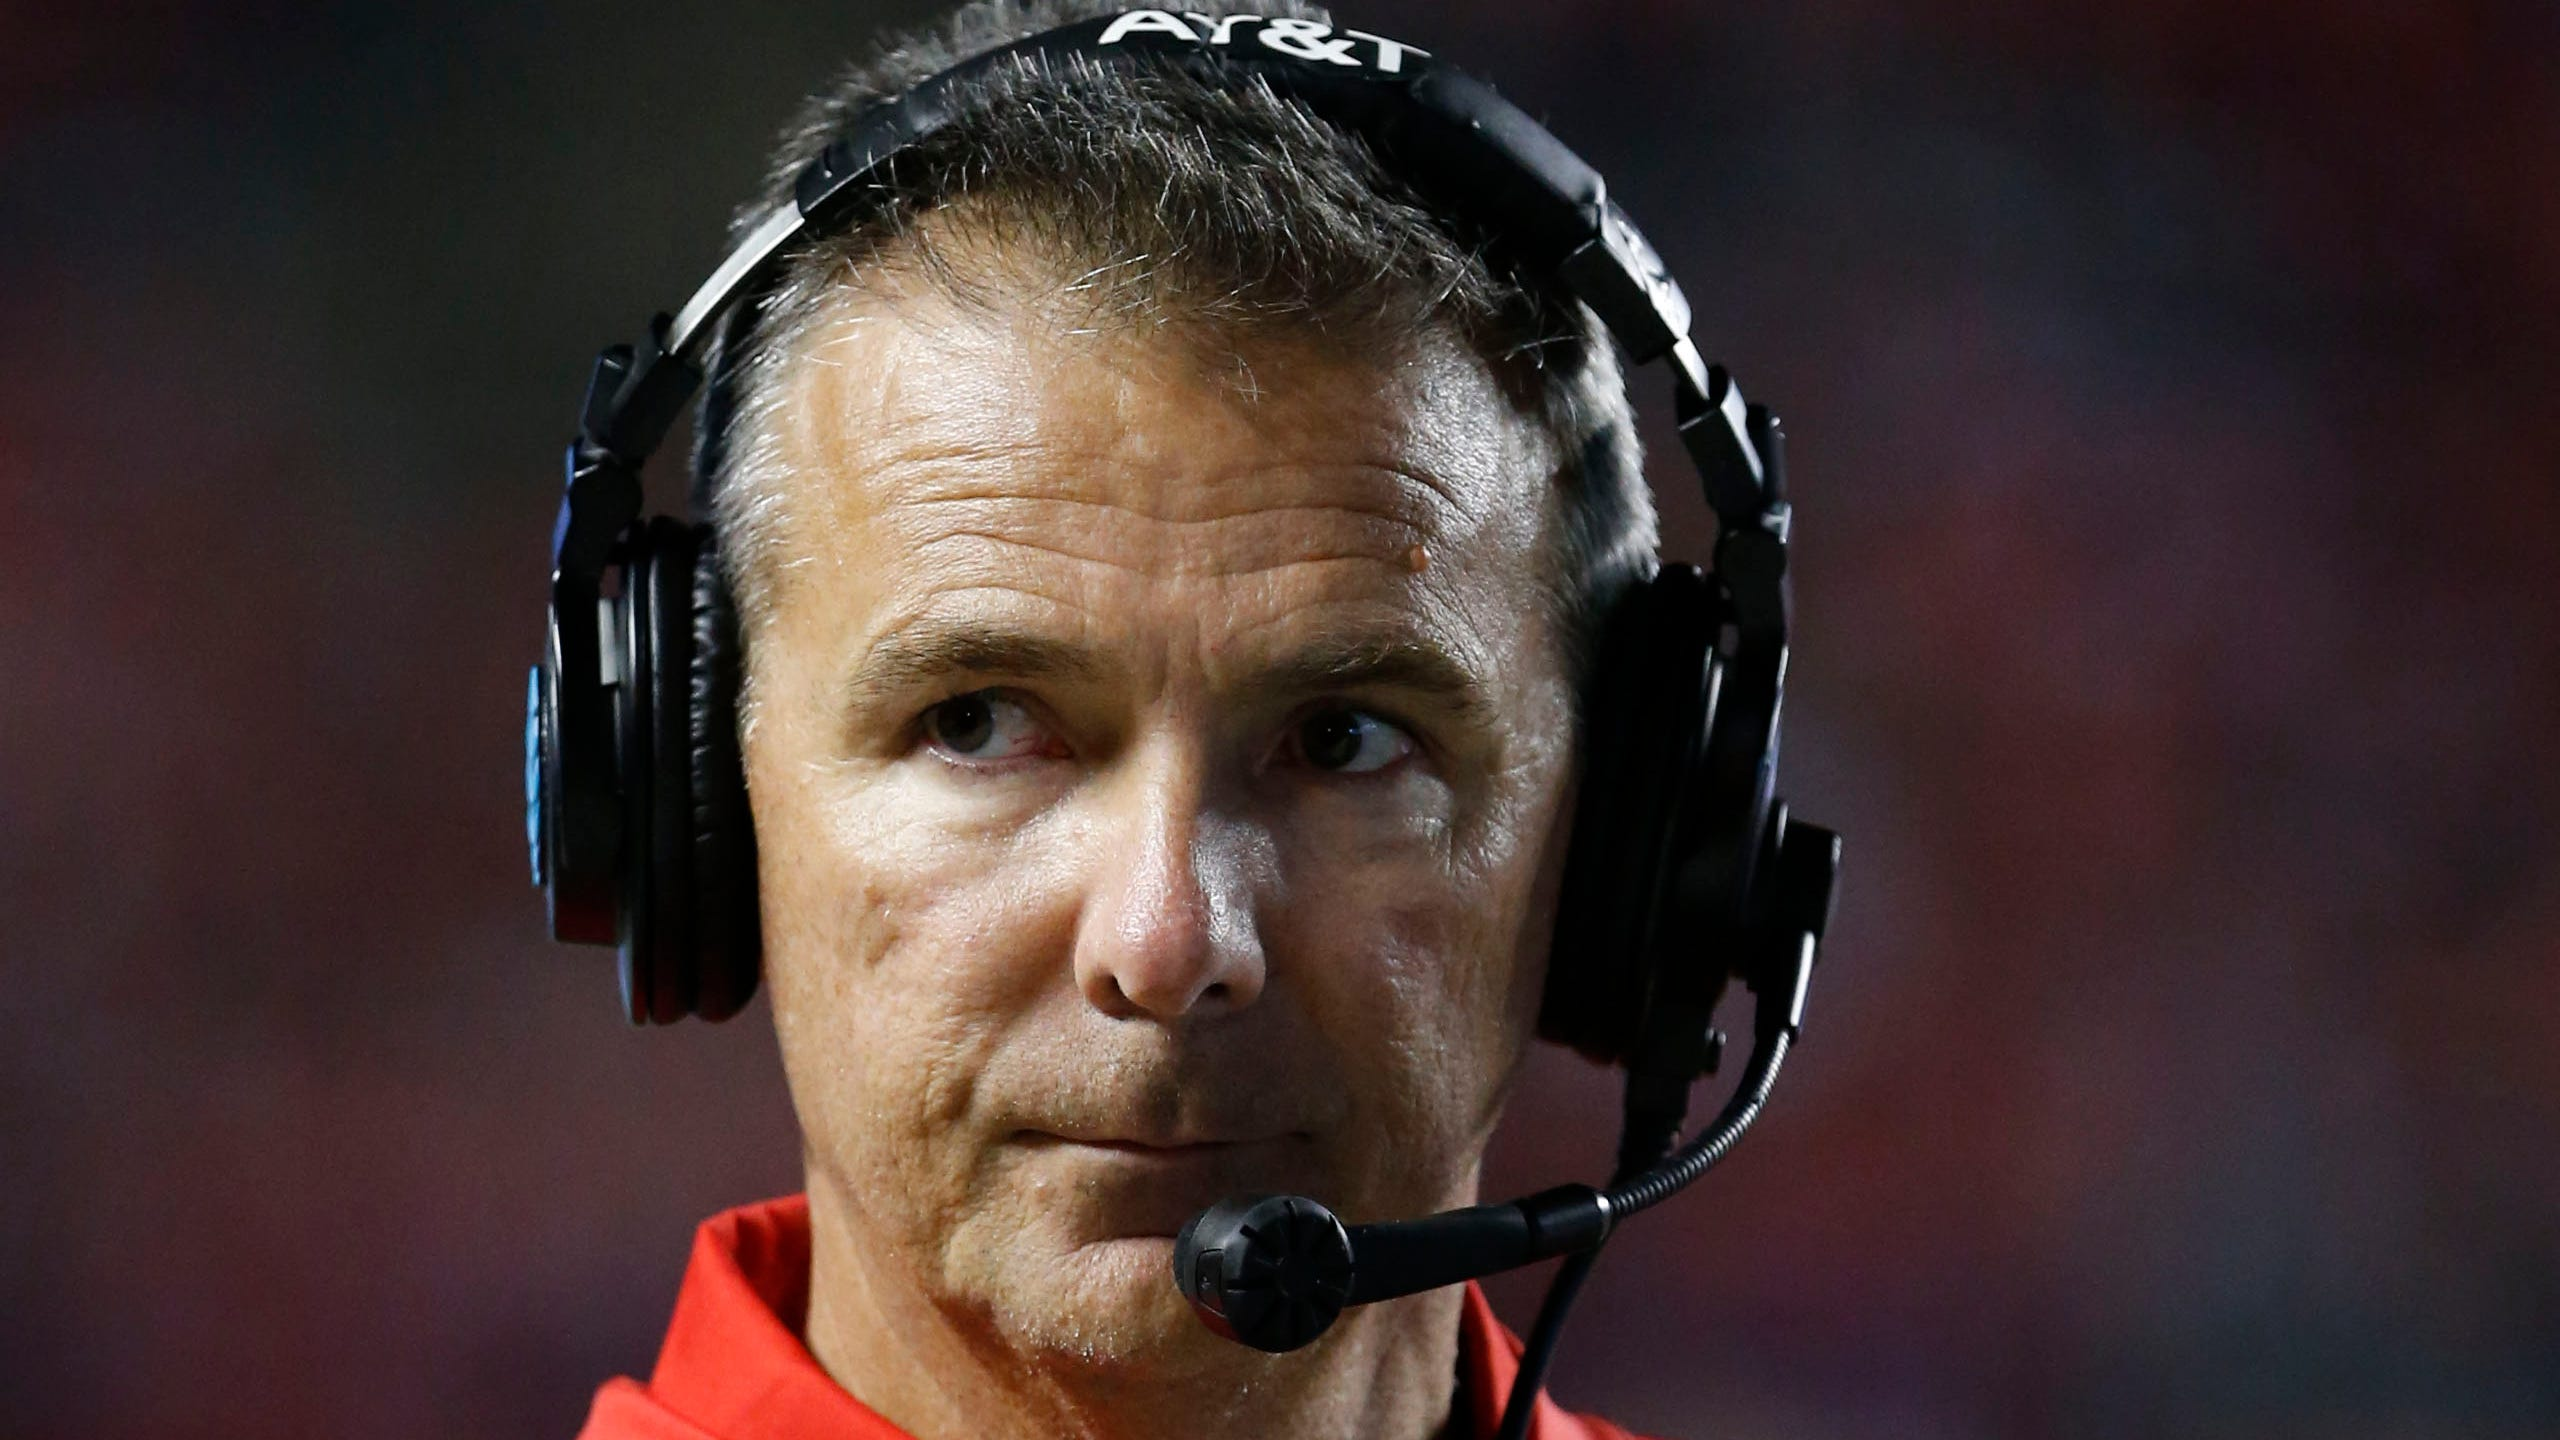 Ohio State coach Urban Meyer looks on during a game last season.